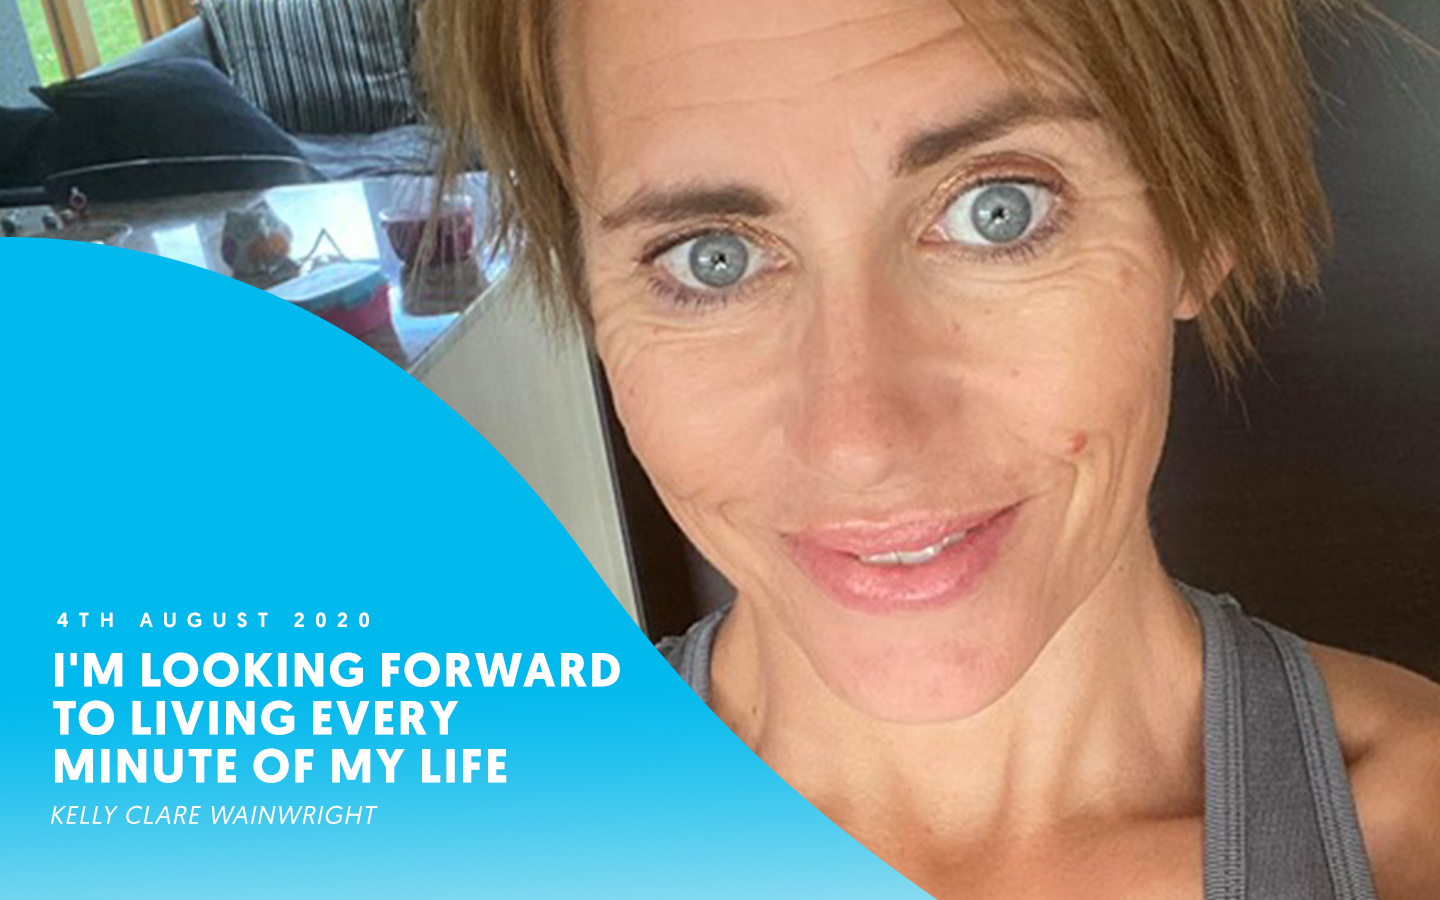 I'm looking forward to living every minute of my life – Kelly Clare Wainwright